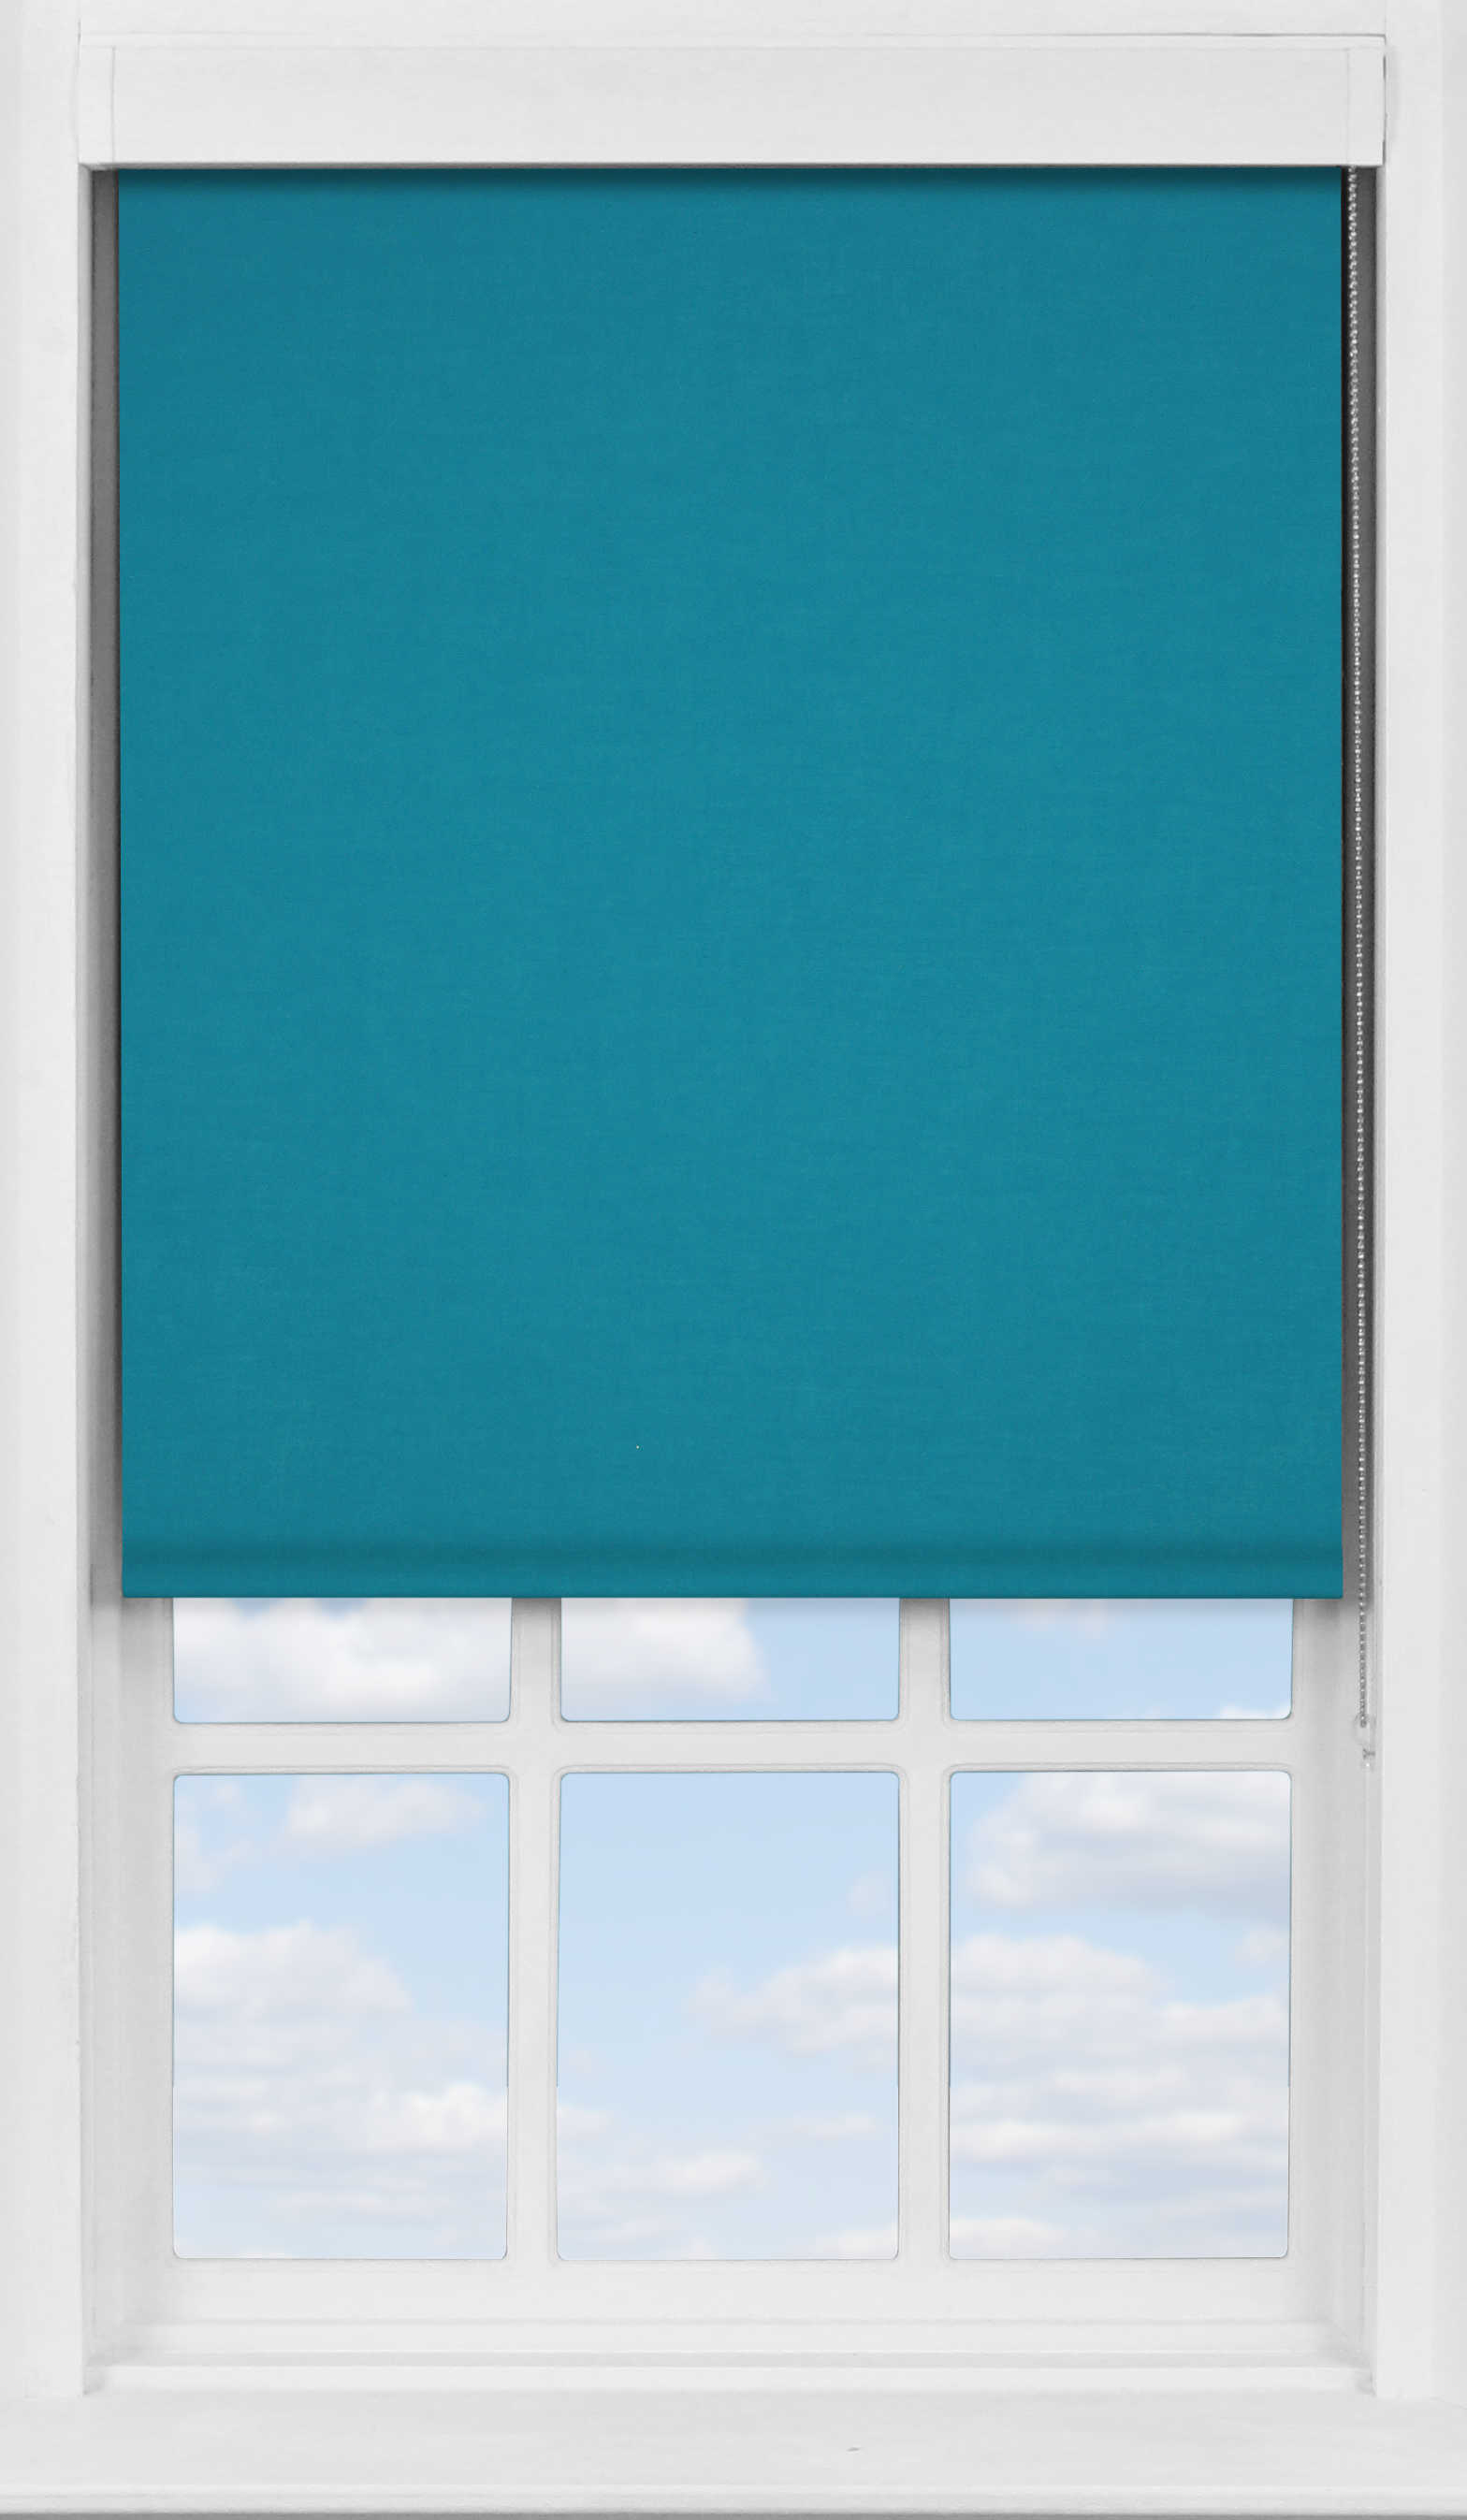 Premium Roller Blind in Mariner's Teal Translucent